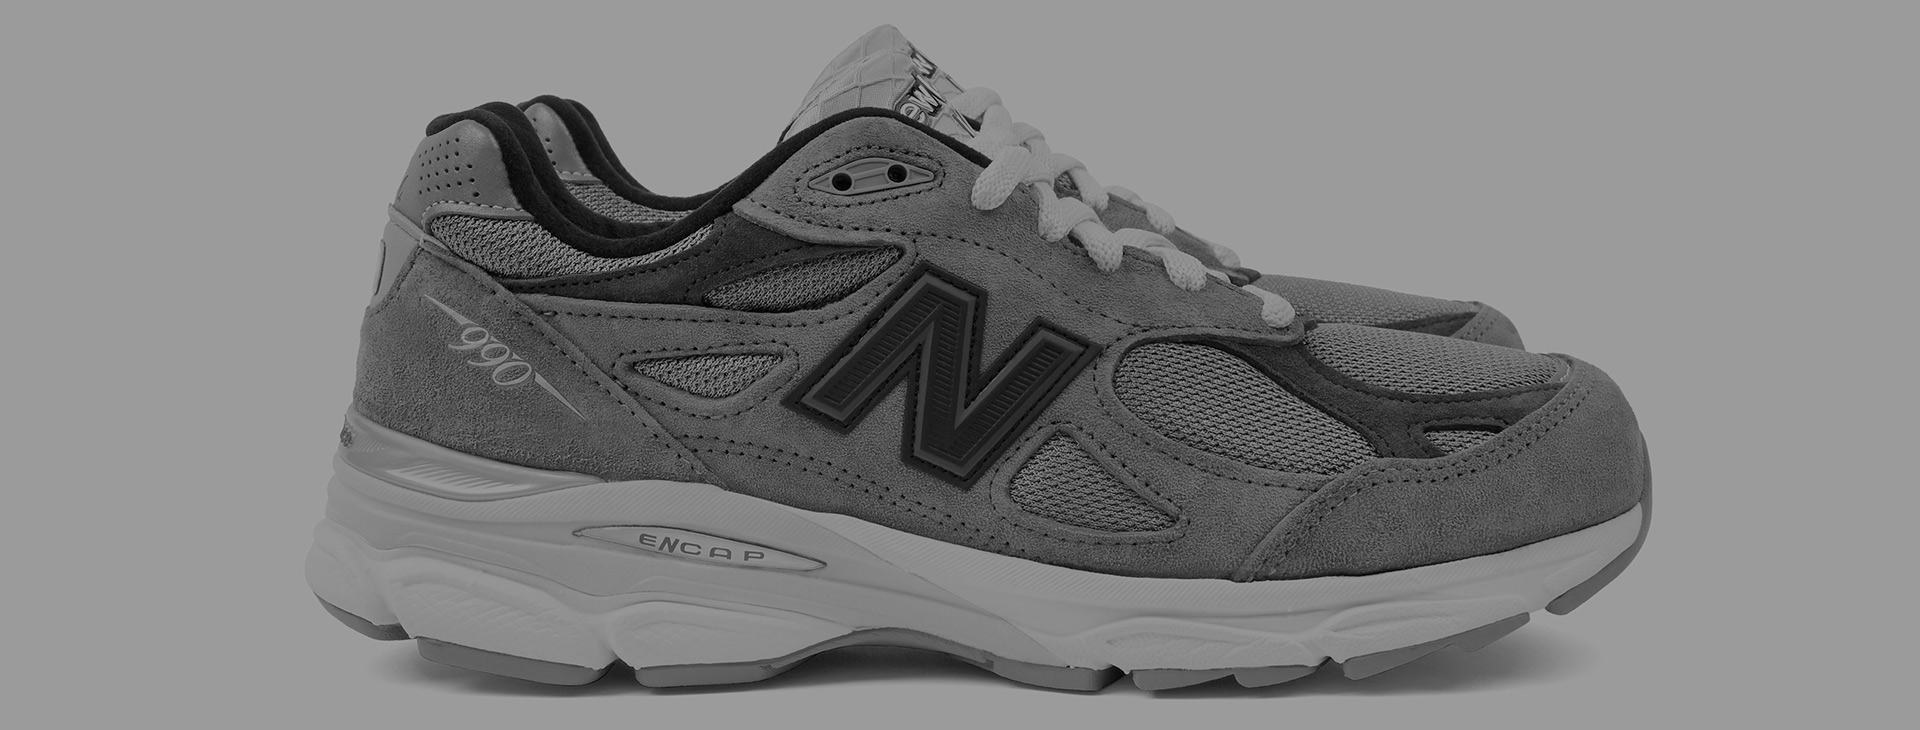 49e2158b97e274 The 10 Best New Balance Shoes of 2018 - SneakerNews.com